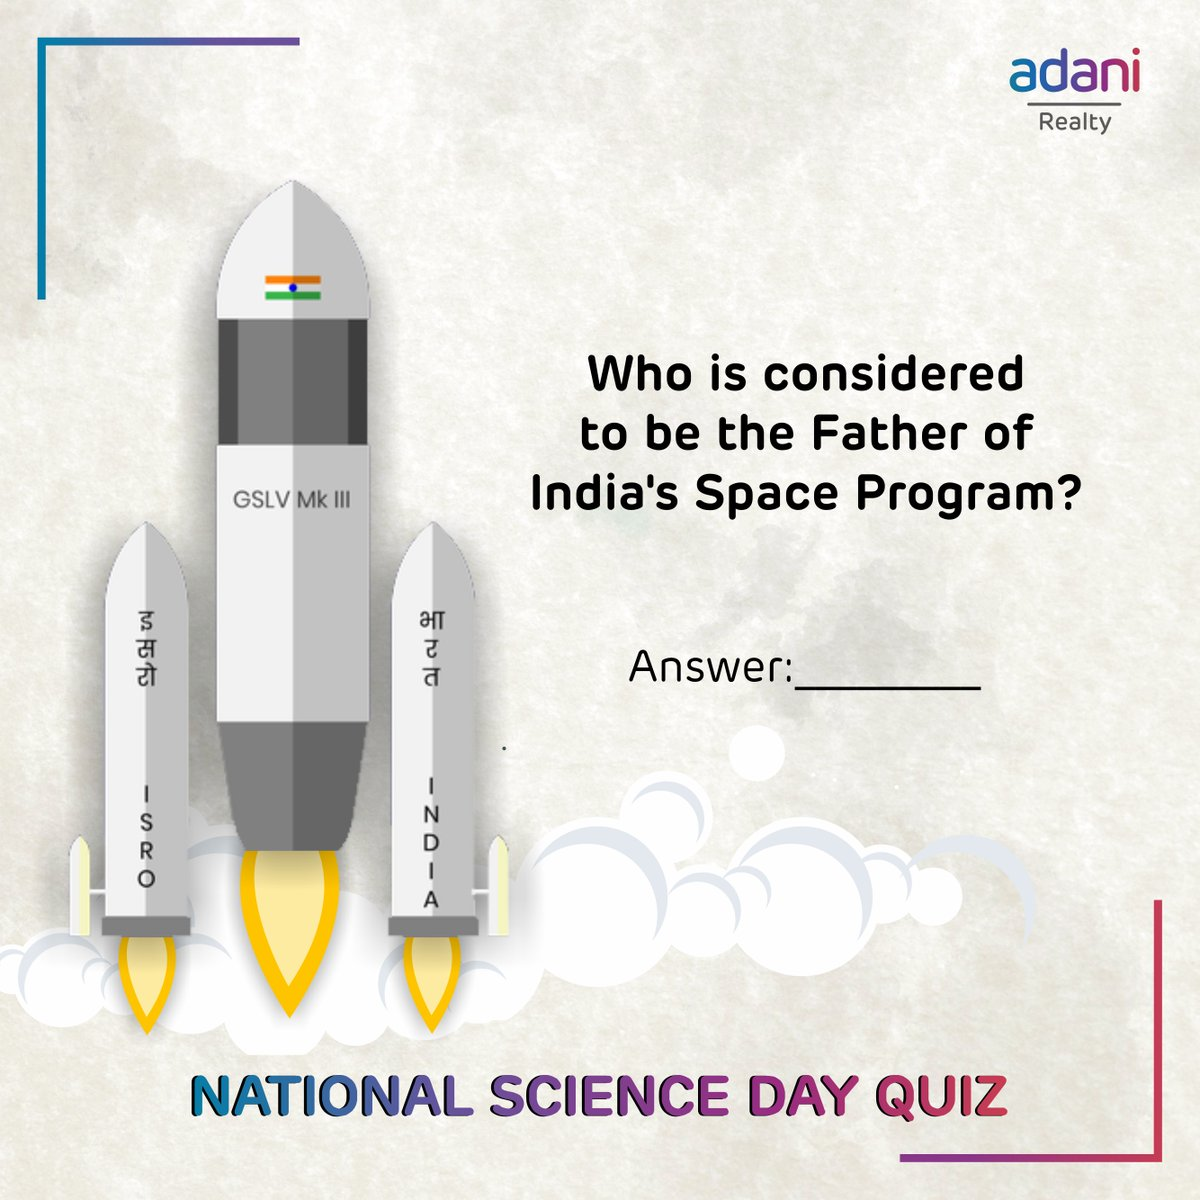 Are you ready to participate in the National Science Day Quiz? Follow @adanirealty & comment the answer below to stand a chance to win amazing gifts!*  Hint: He has been honoured with the Padma Bhushan in 1966 and the Padma Vibhushan in 1972.  #NationalScienceDay *T&C Apply